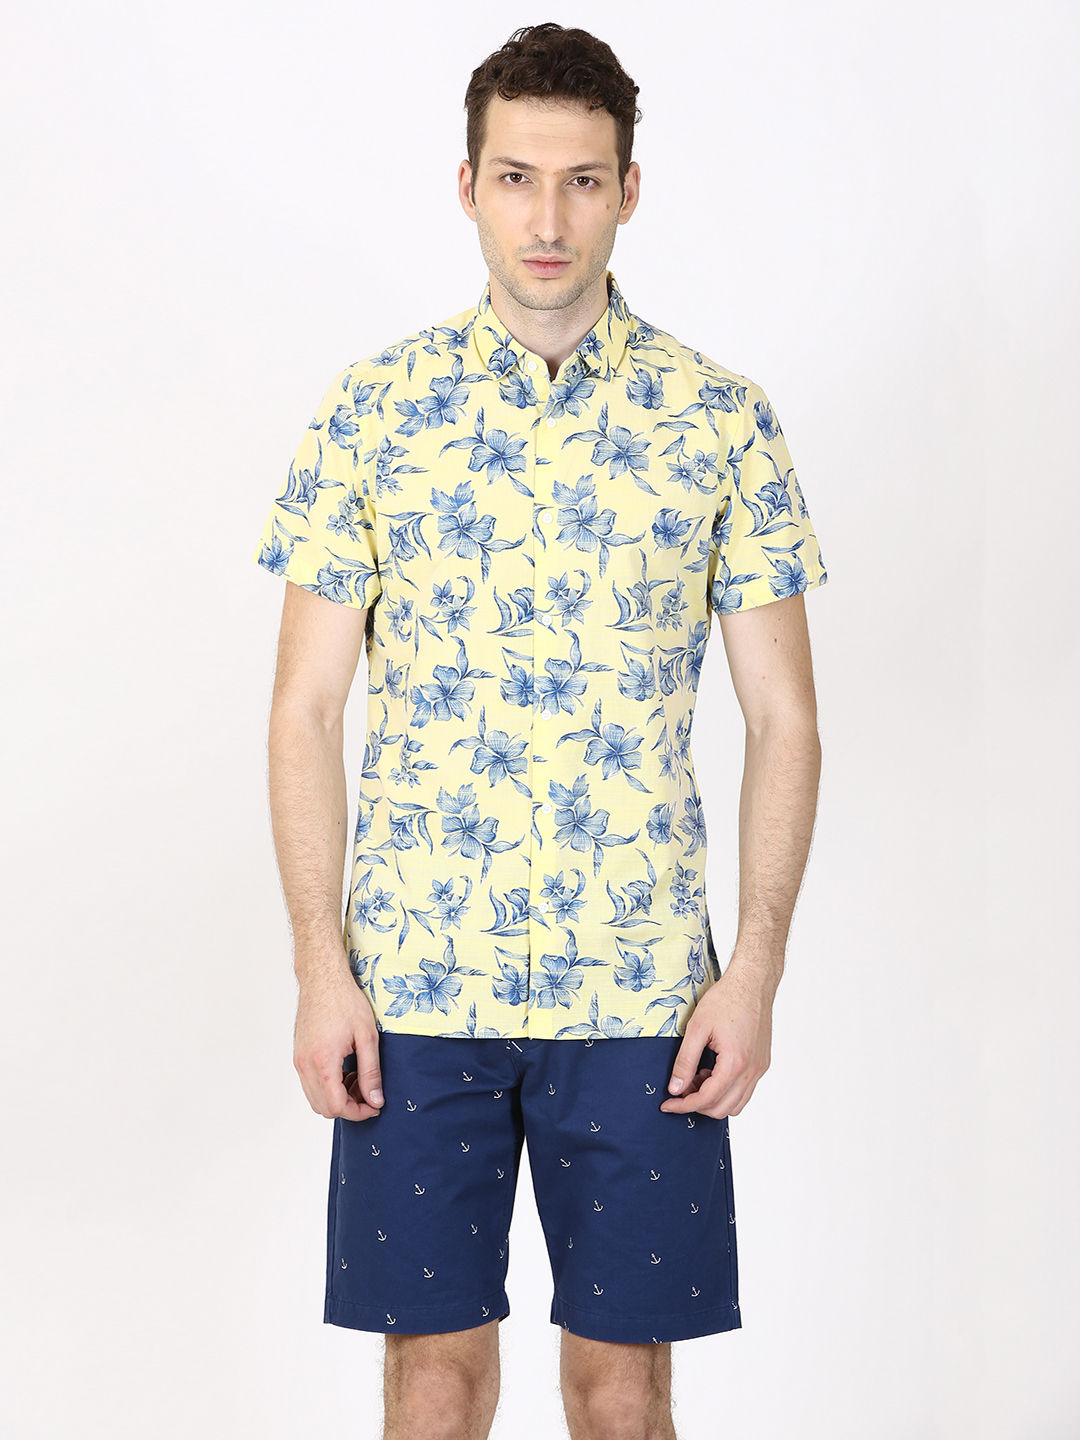 YELLOW FLORAL CASUAL SHIRT